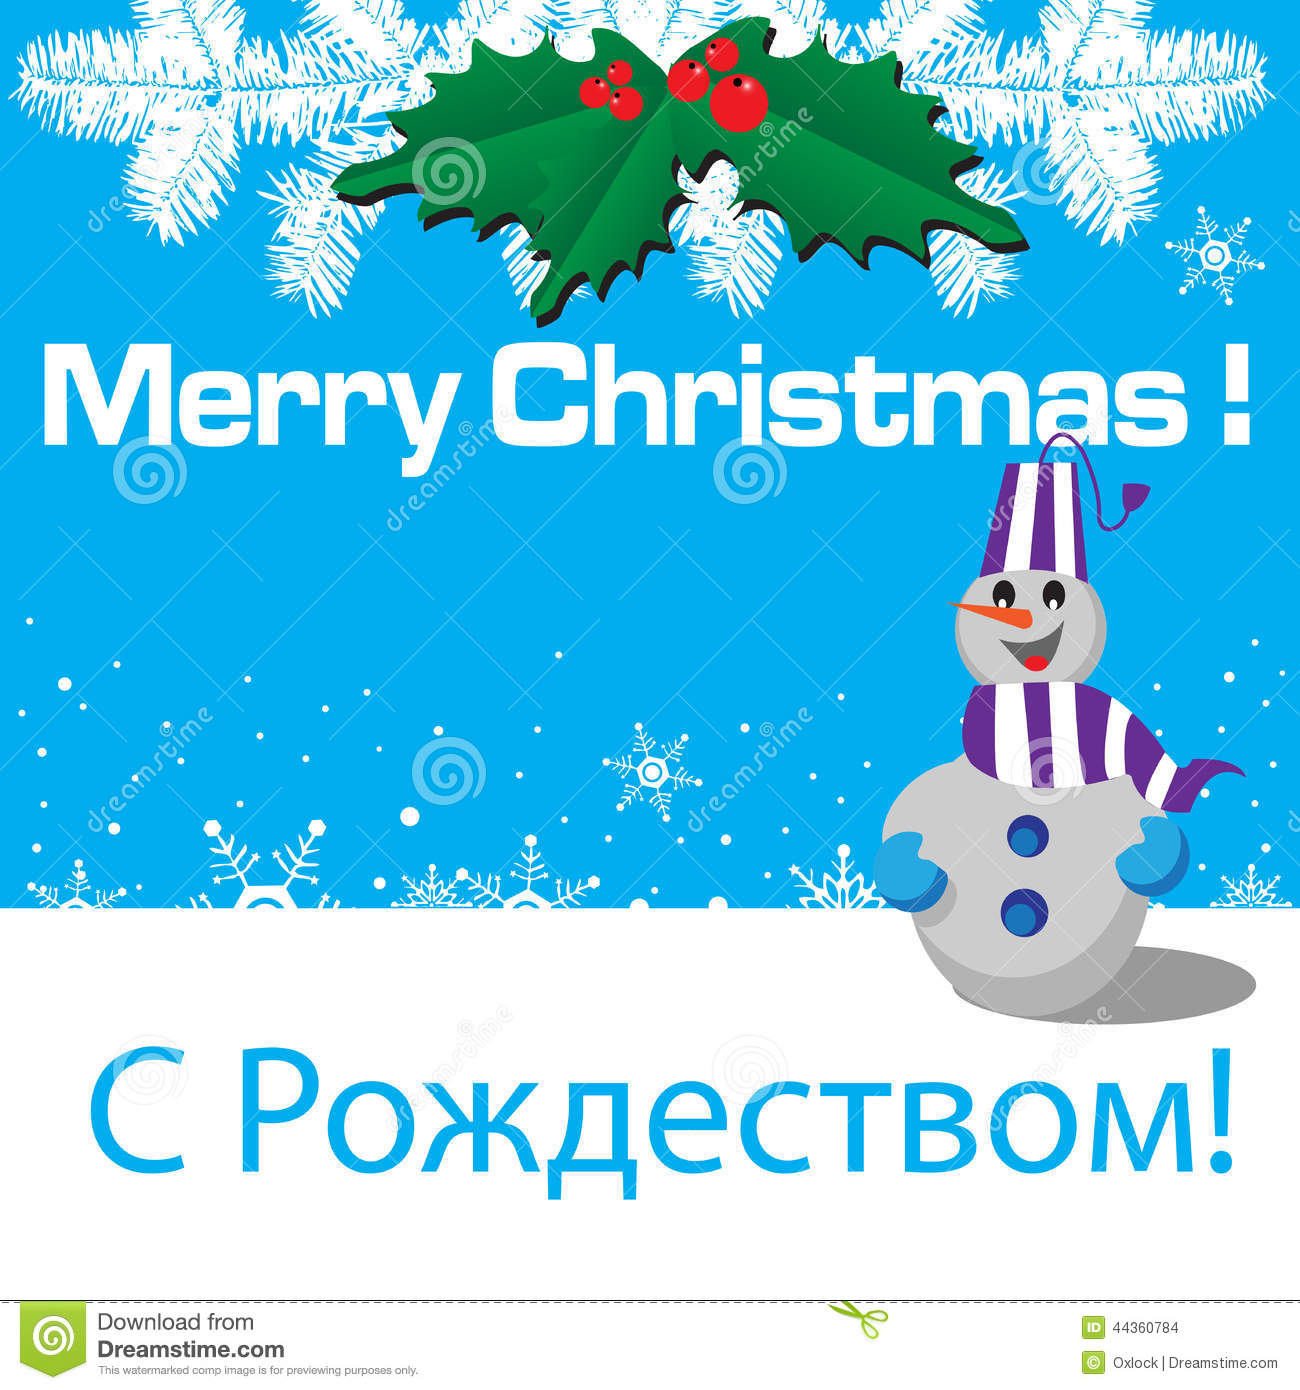 merry christmas in english and russian - Russian Merry Christmas